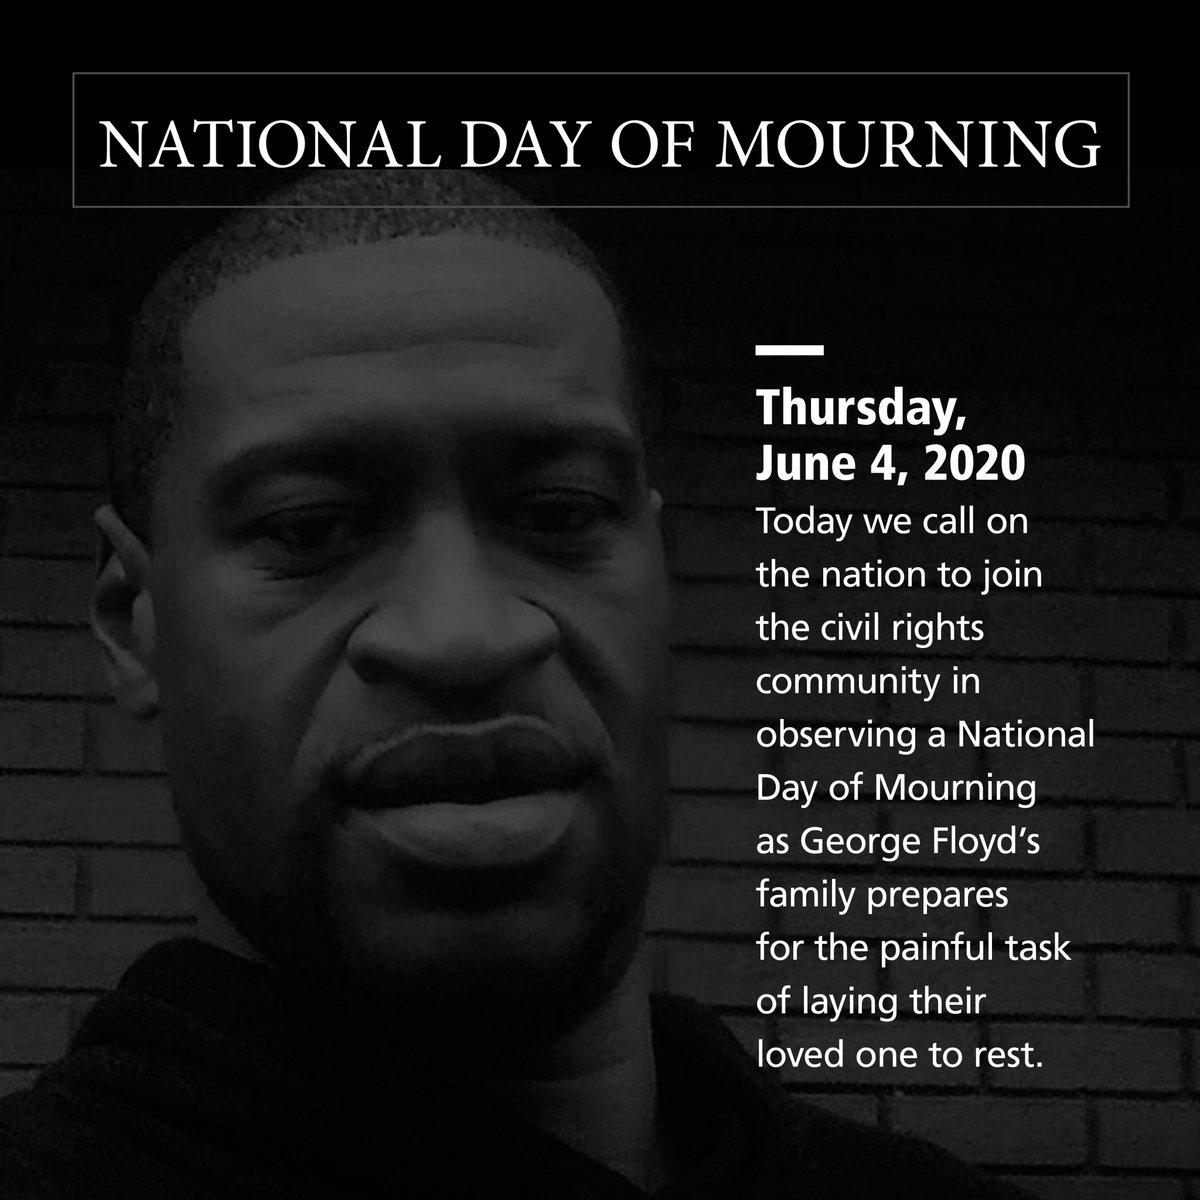 Today we join the @NAACP, @civilrightsorg, and the civil rights community in a National Day of Mourning in recognition of the tragic and senseless loss of Black lives to police violence. At 3:45 PM ET, we will be joining the nation in observing a moment of silence.